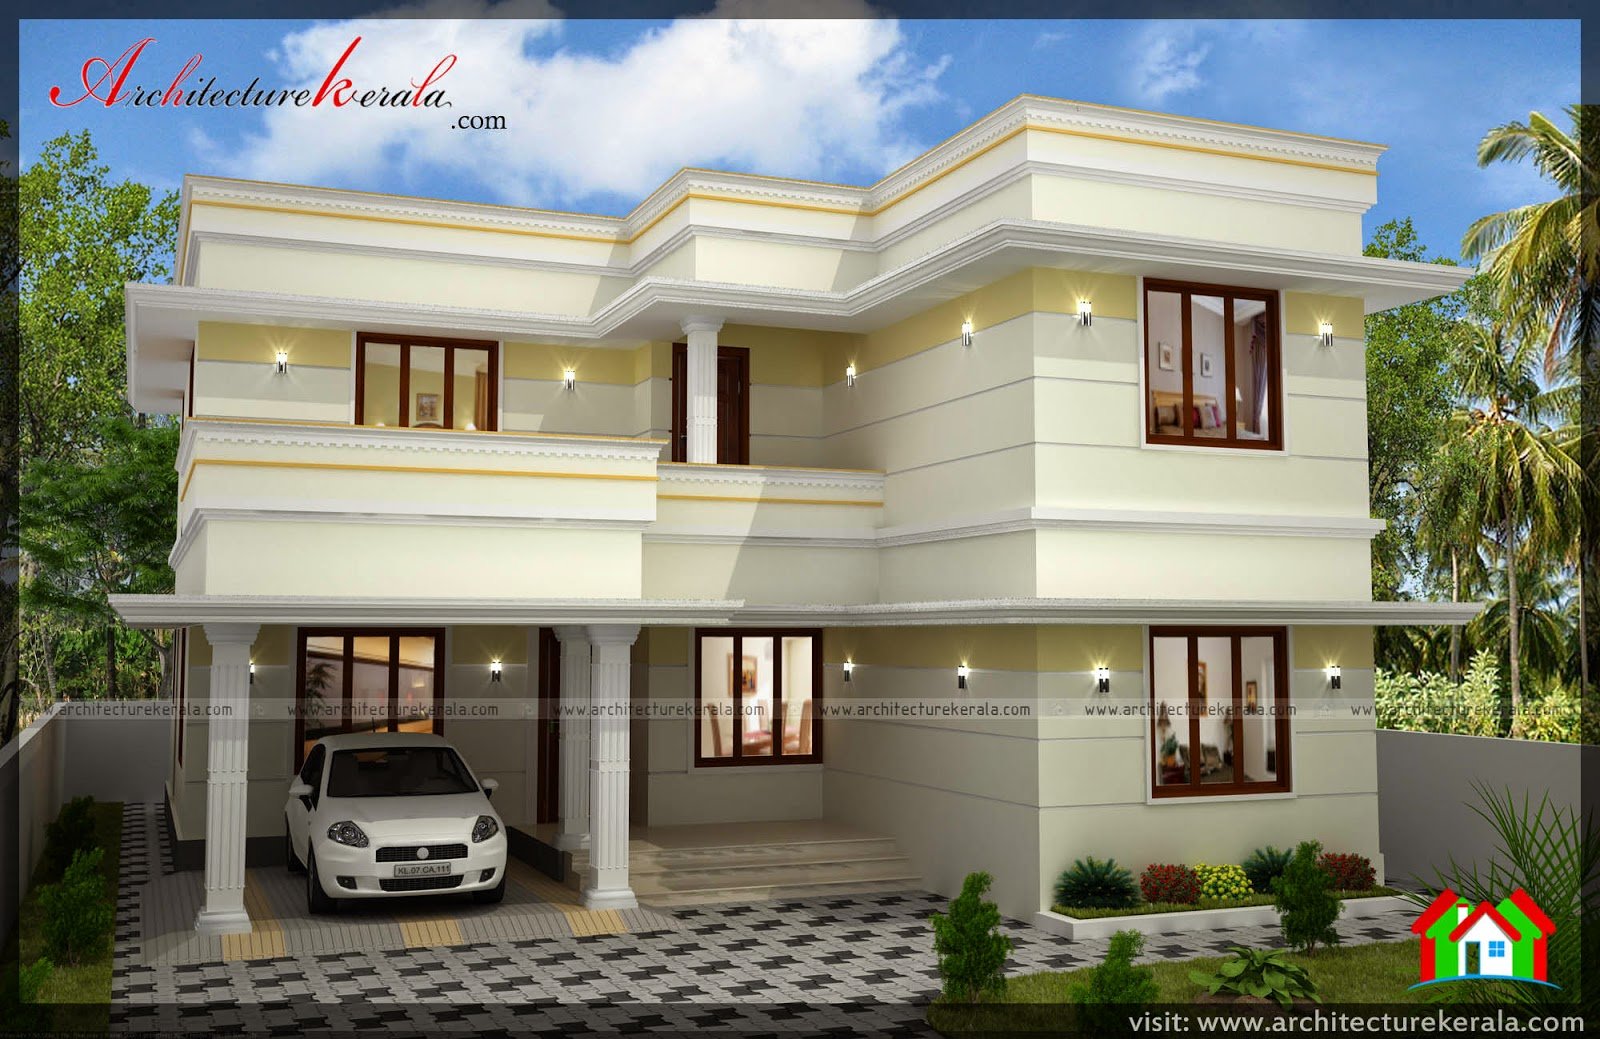 Three bedroom two storey house plan architecture kerala for 3 story home plans and designs